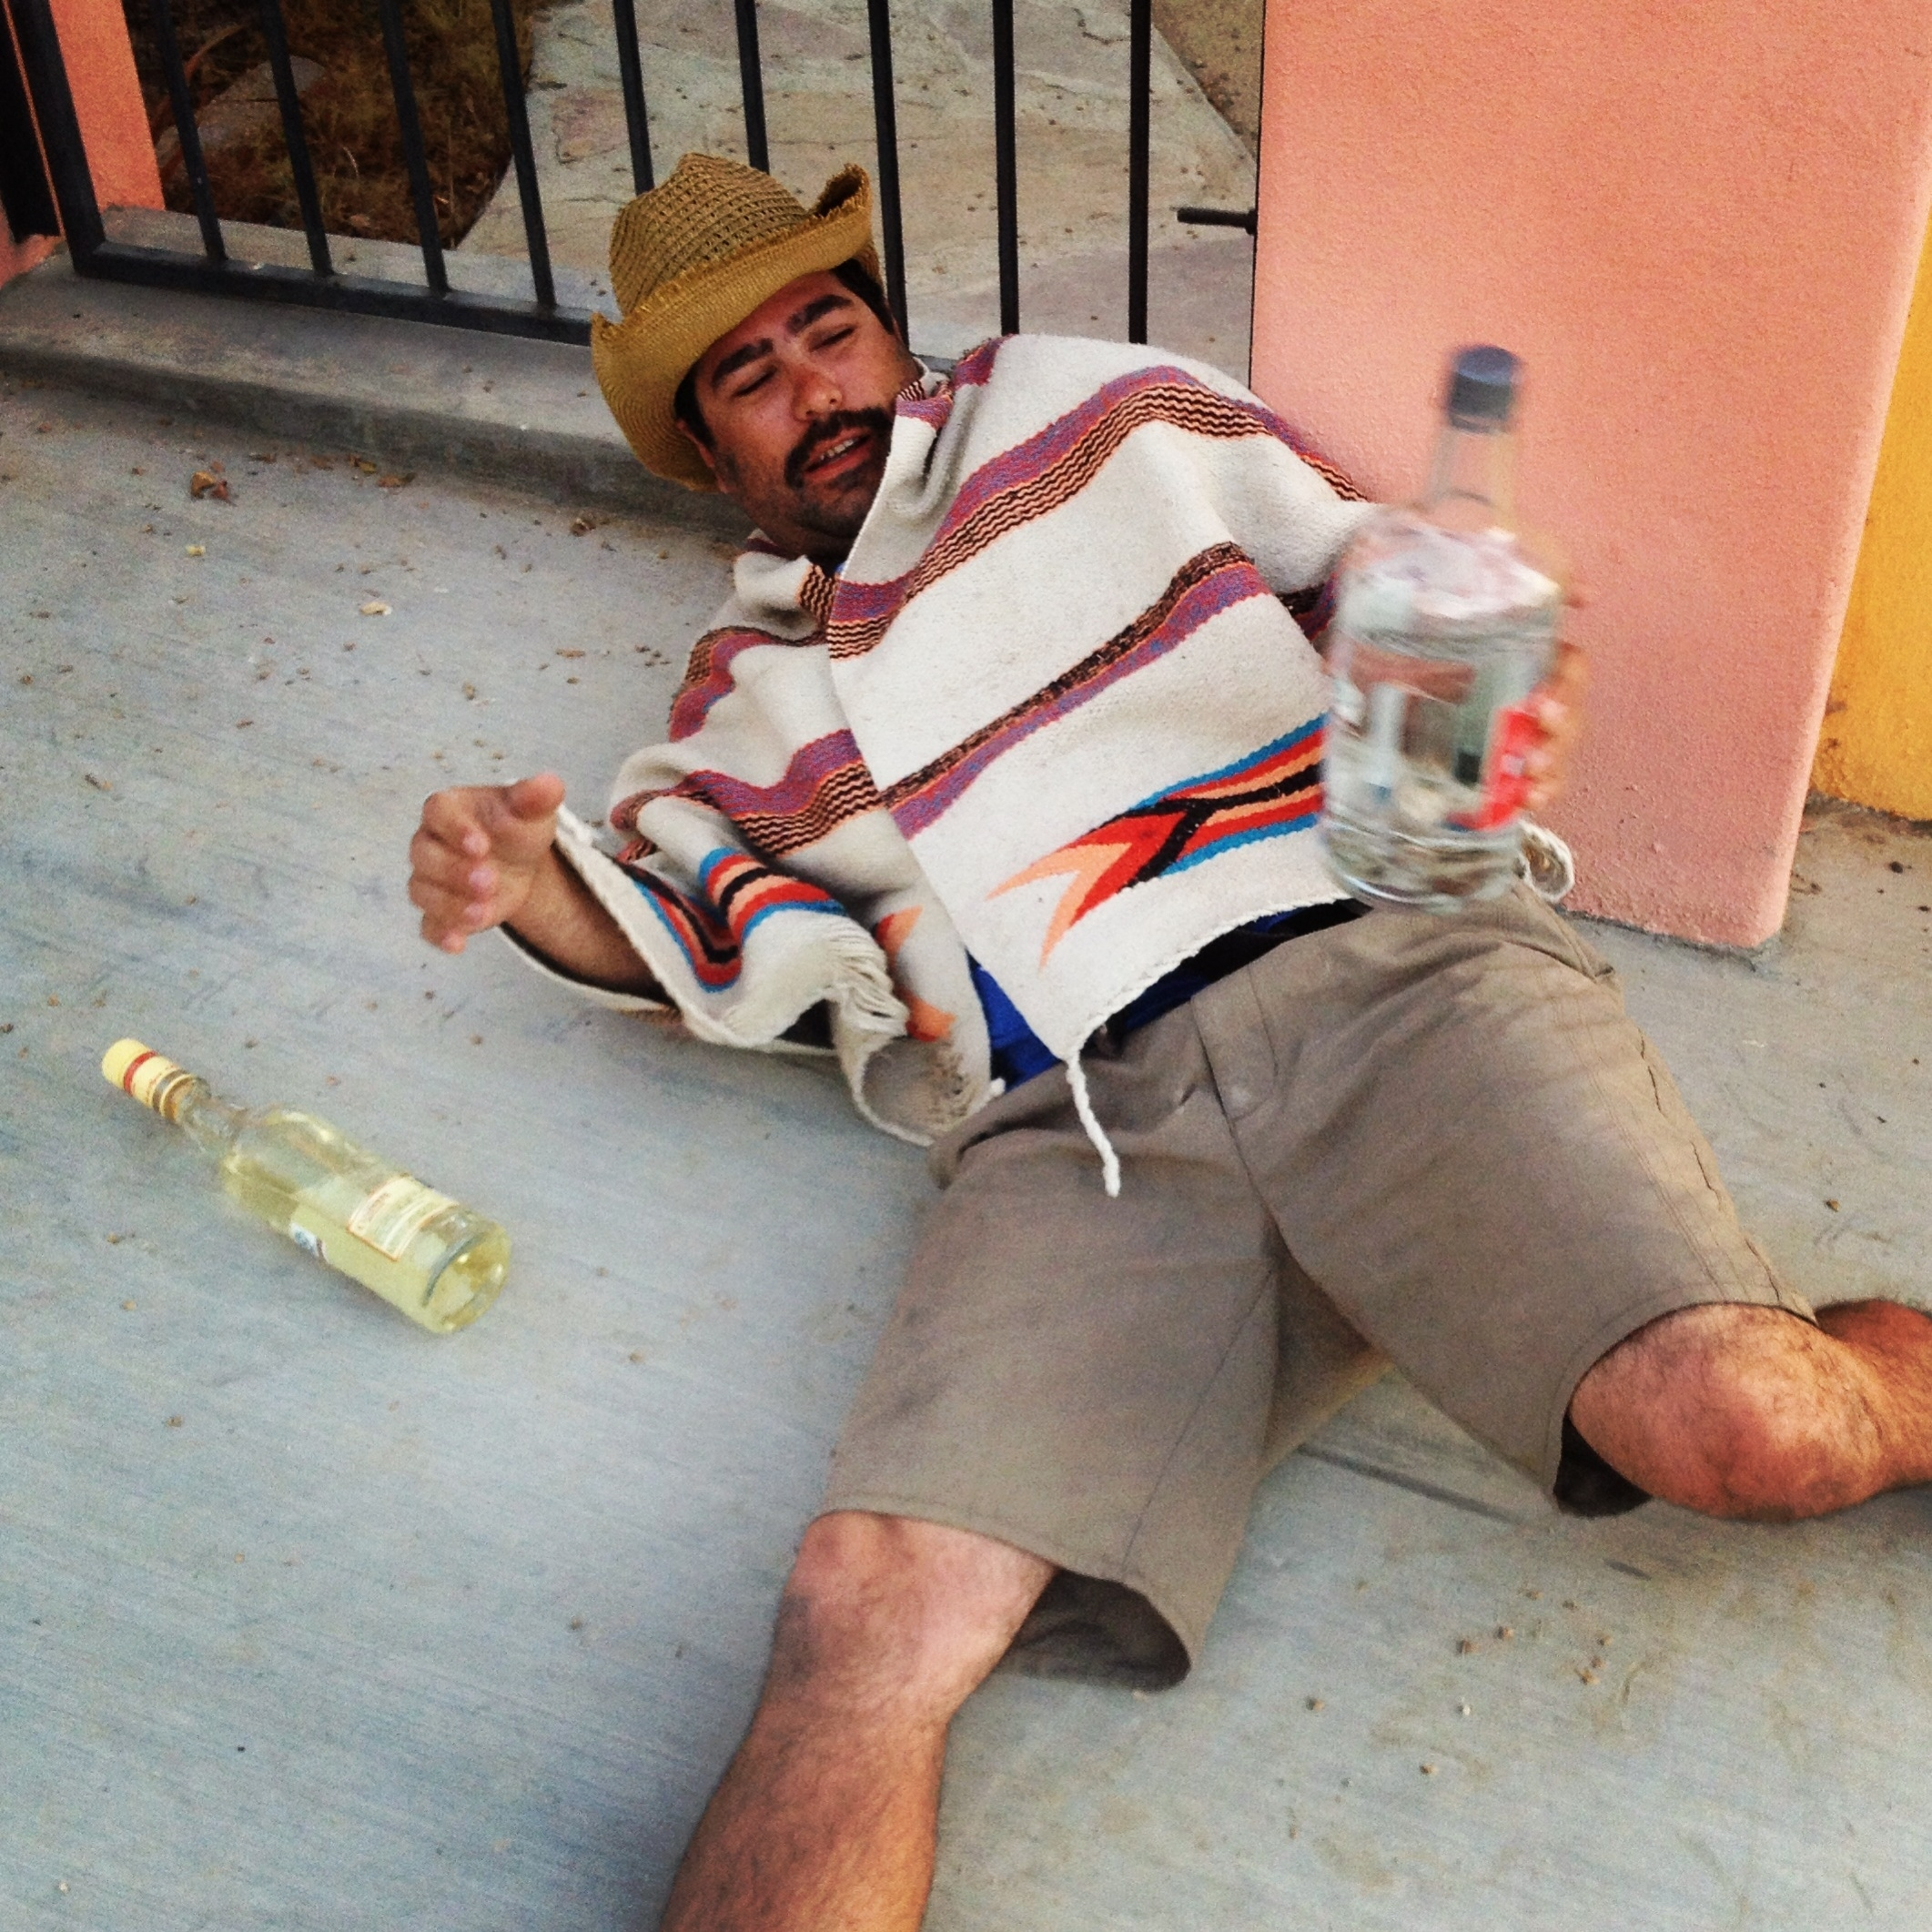 Pictures of drunk mexicans